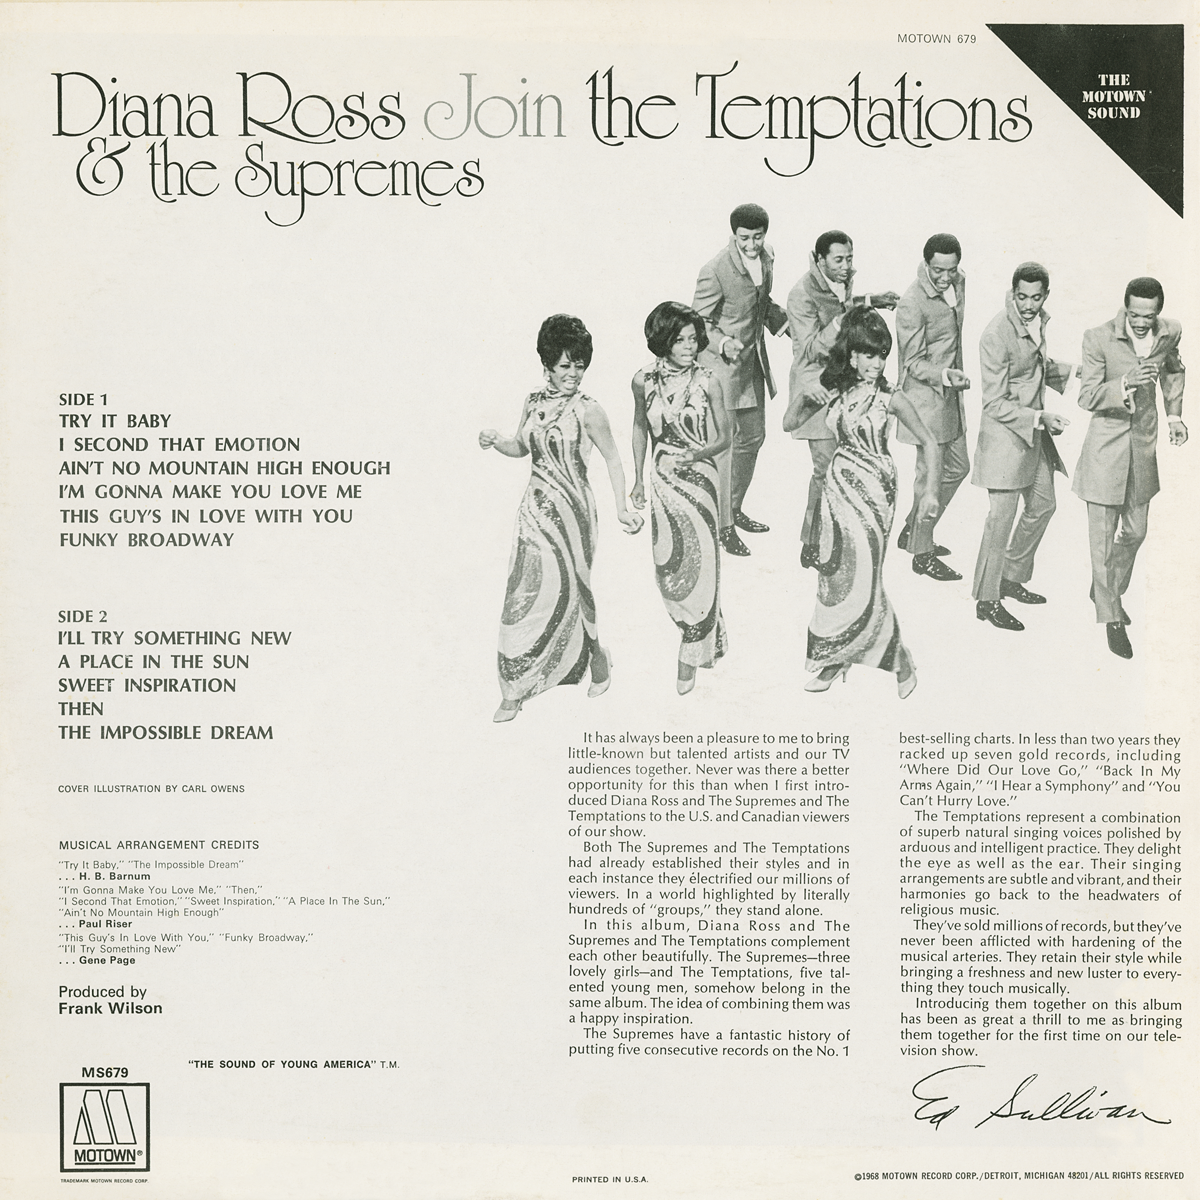 Diana Ross Amp The Supremes And The Temptations Diana Ross